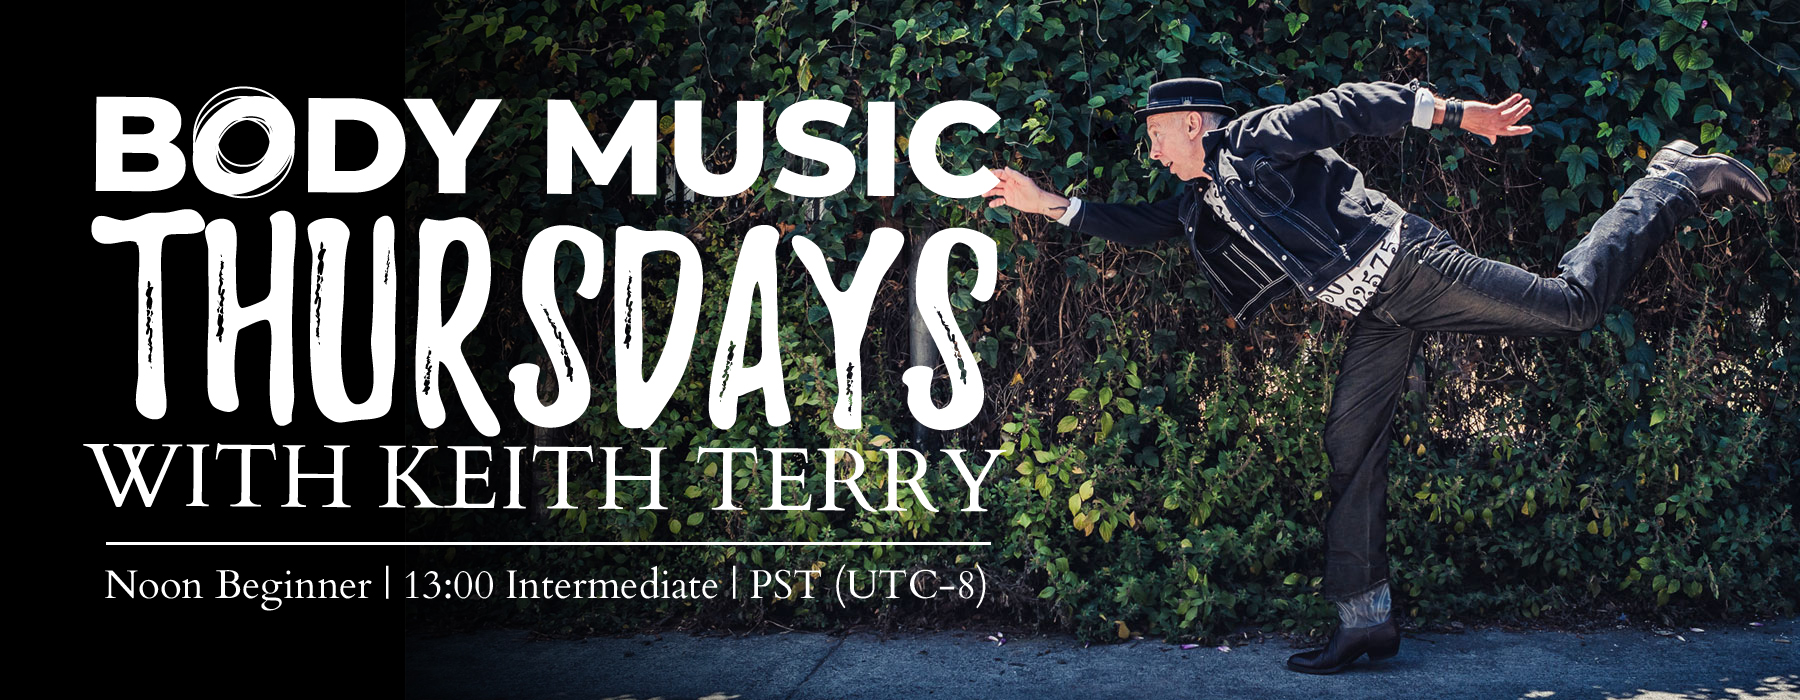 Body Music Thursdays - online classes with Keith Terry